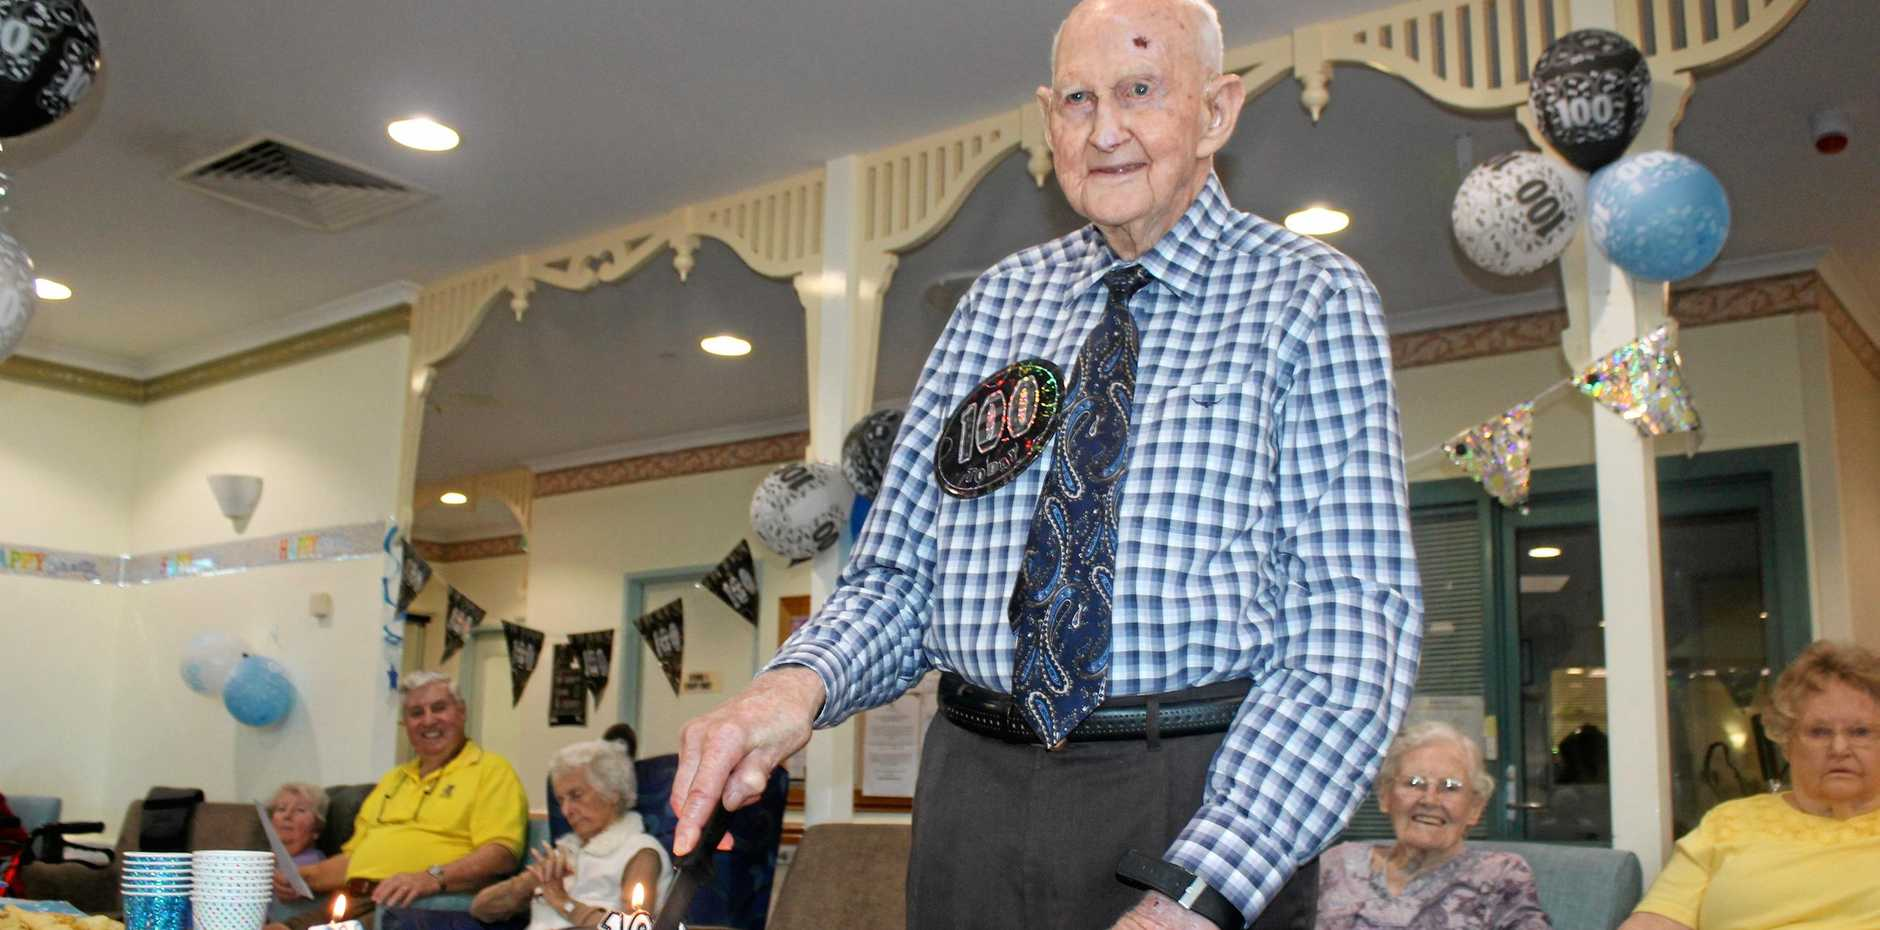 HAPPY BIRTHDAY: Alstonville's Adventist aged-care resident, Gordon Elvery, turned 100 on September 6.